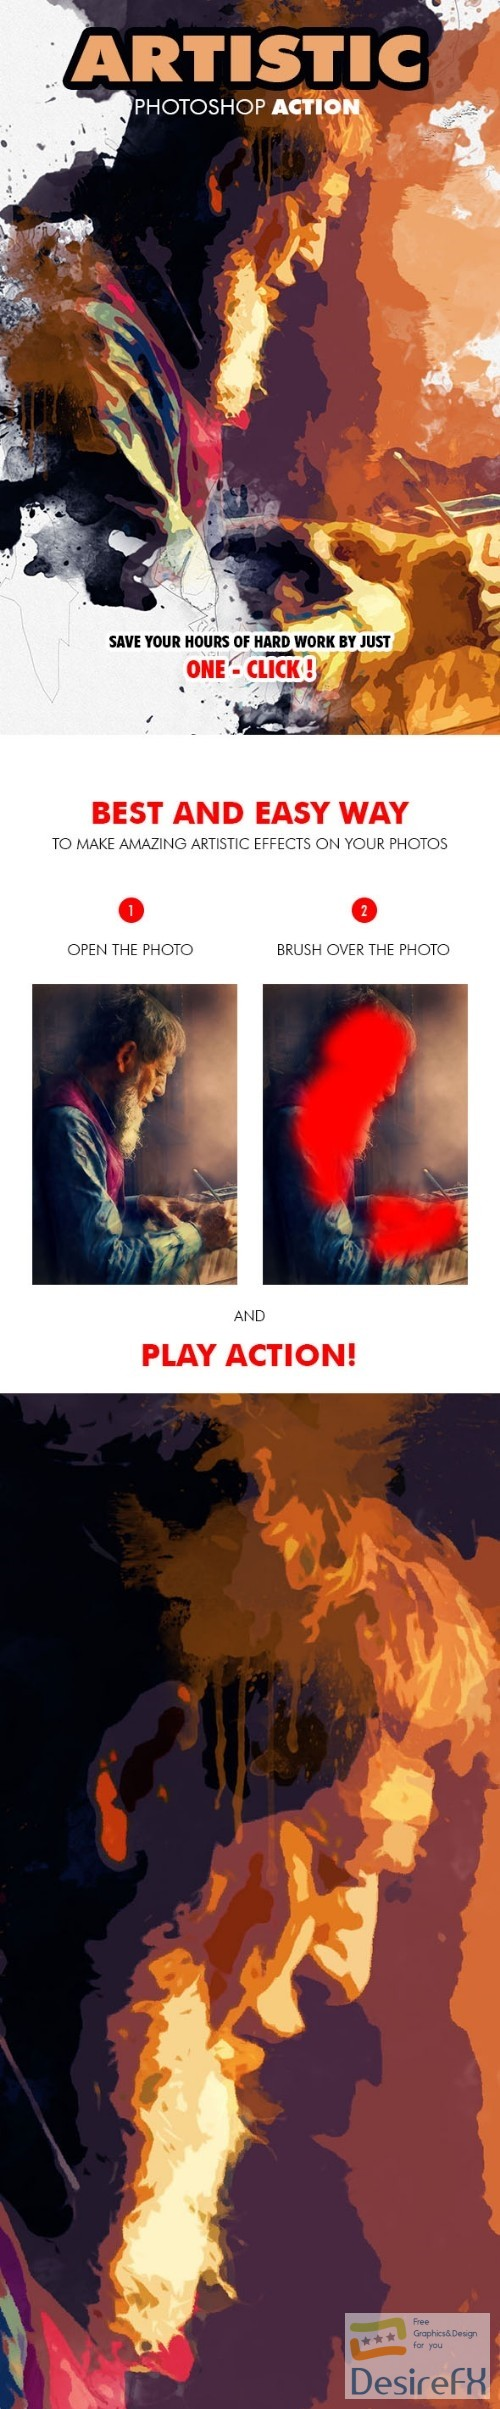 actions-atn - Artistic Photoshop Action 19663049